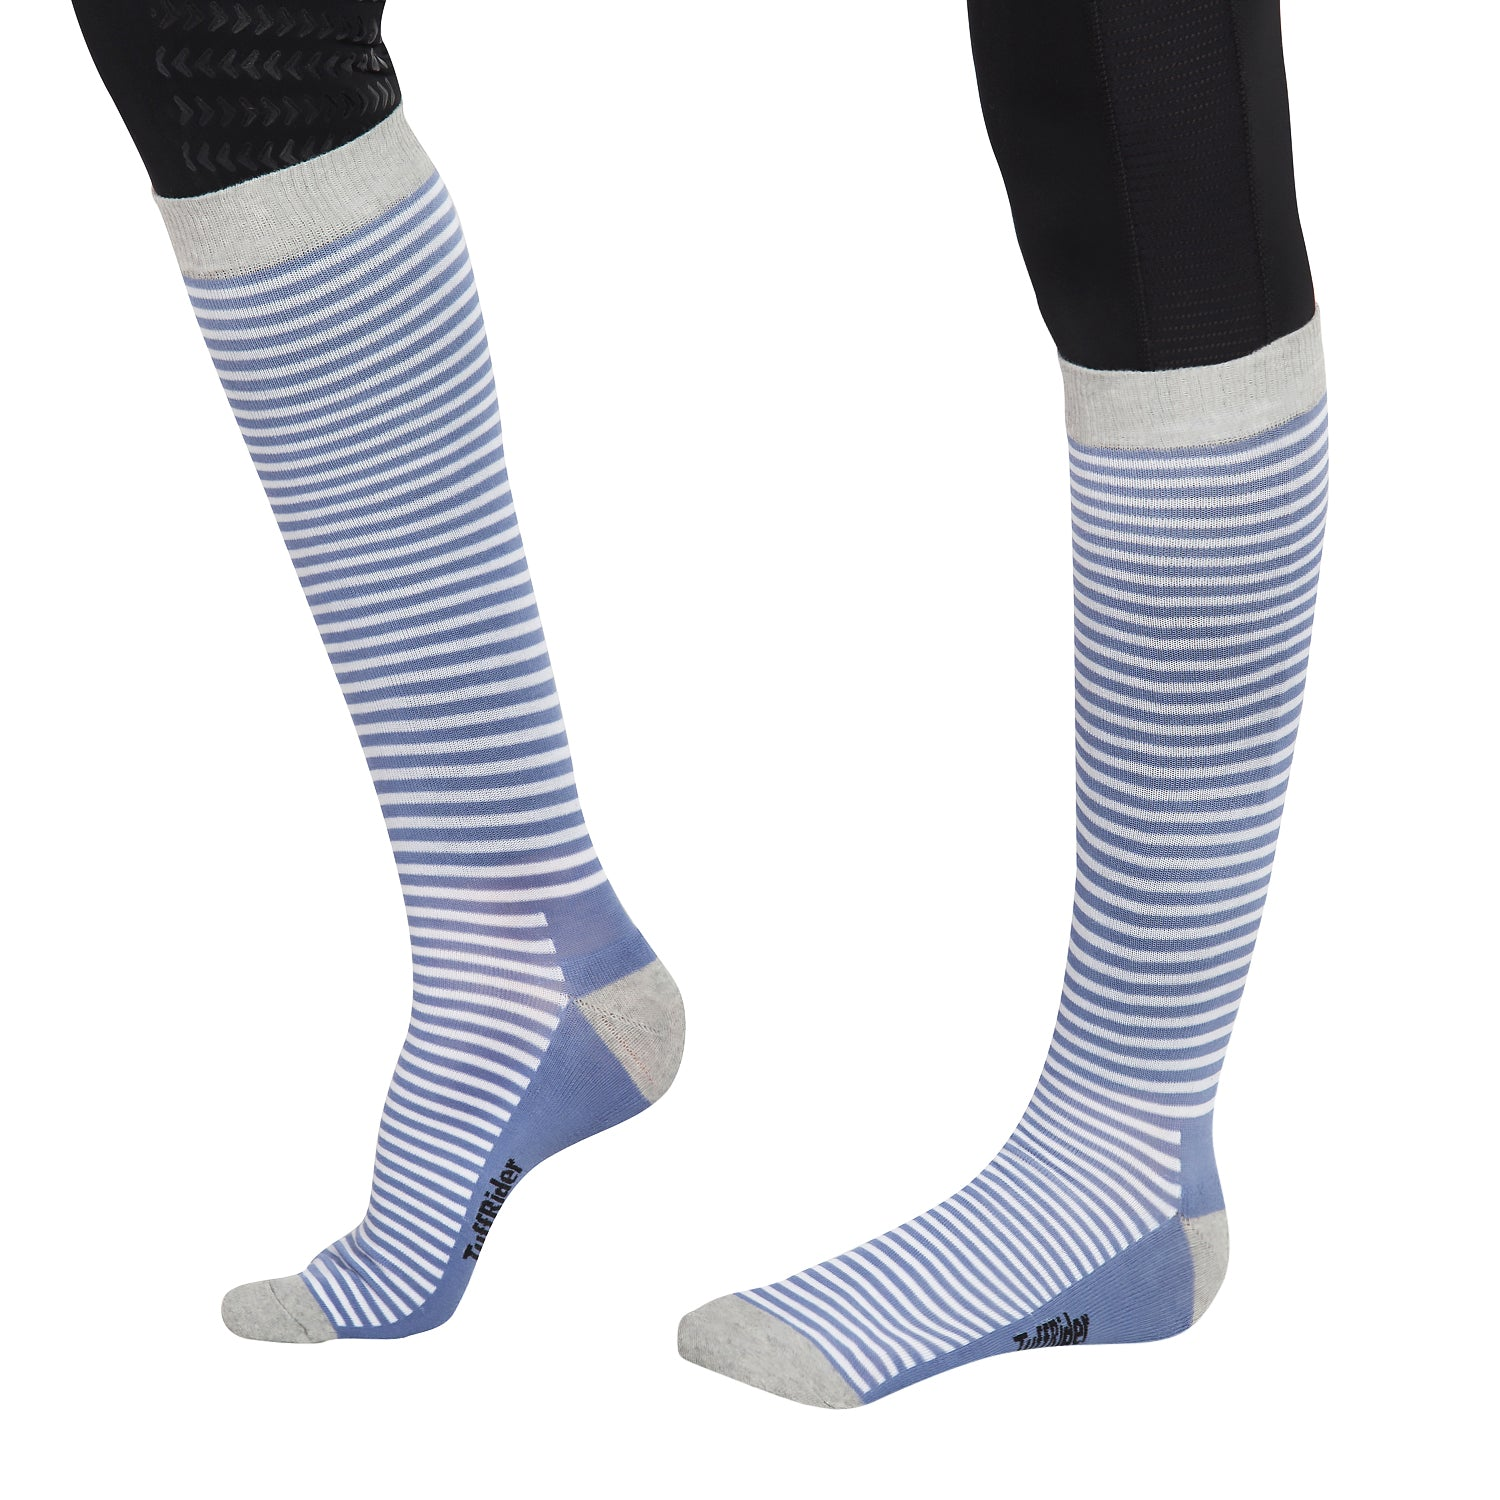 TuffRider Ladies Hera Knee Hi Socks - 3 Pack_1657